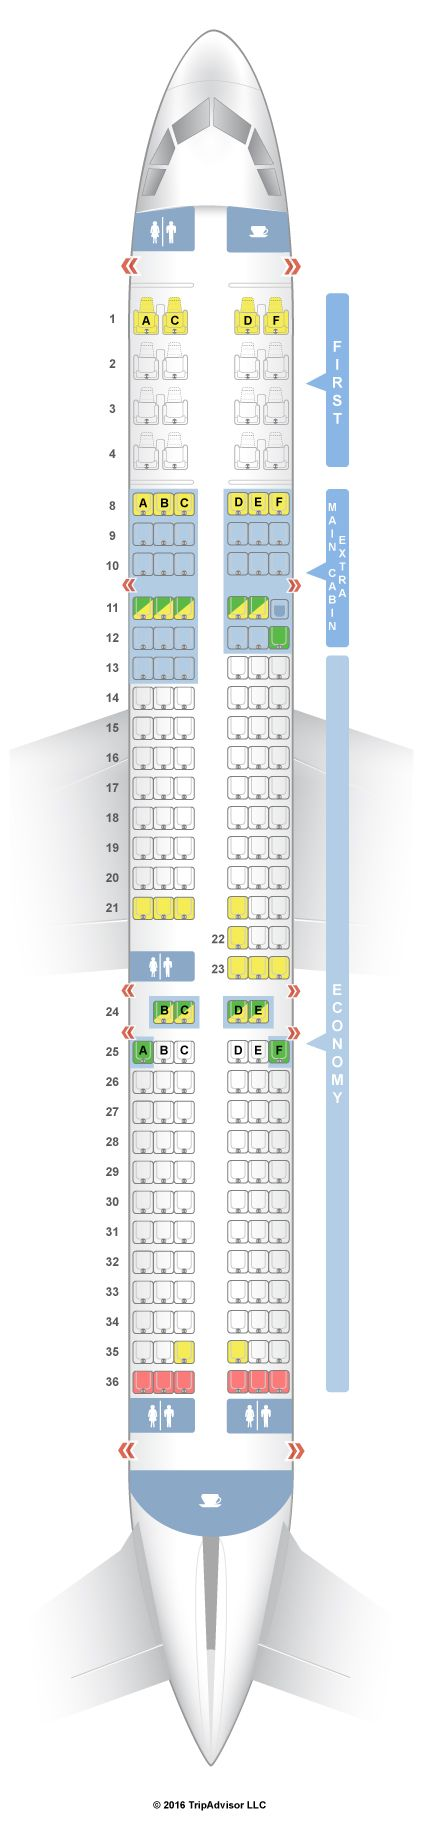 SeatGuru Seat Map American Airlines Airbus A321 (32B) V2 | Travel ...